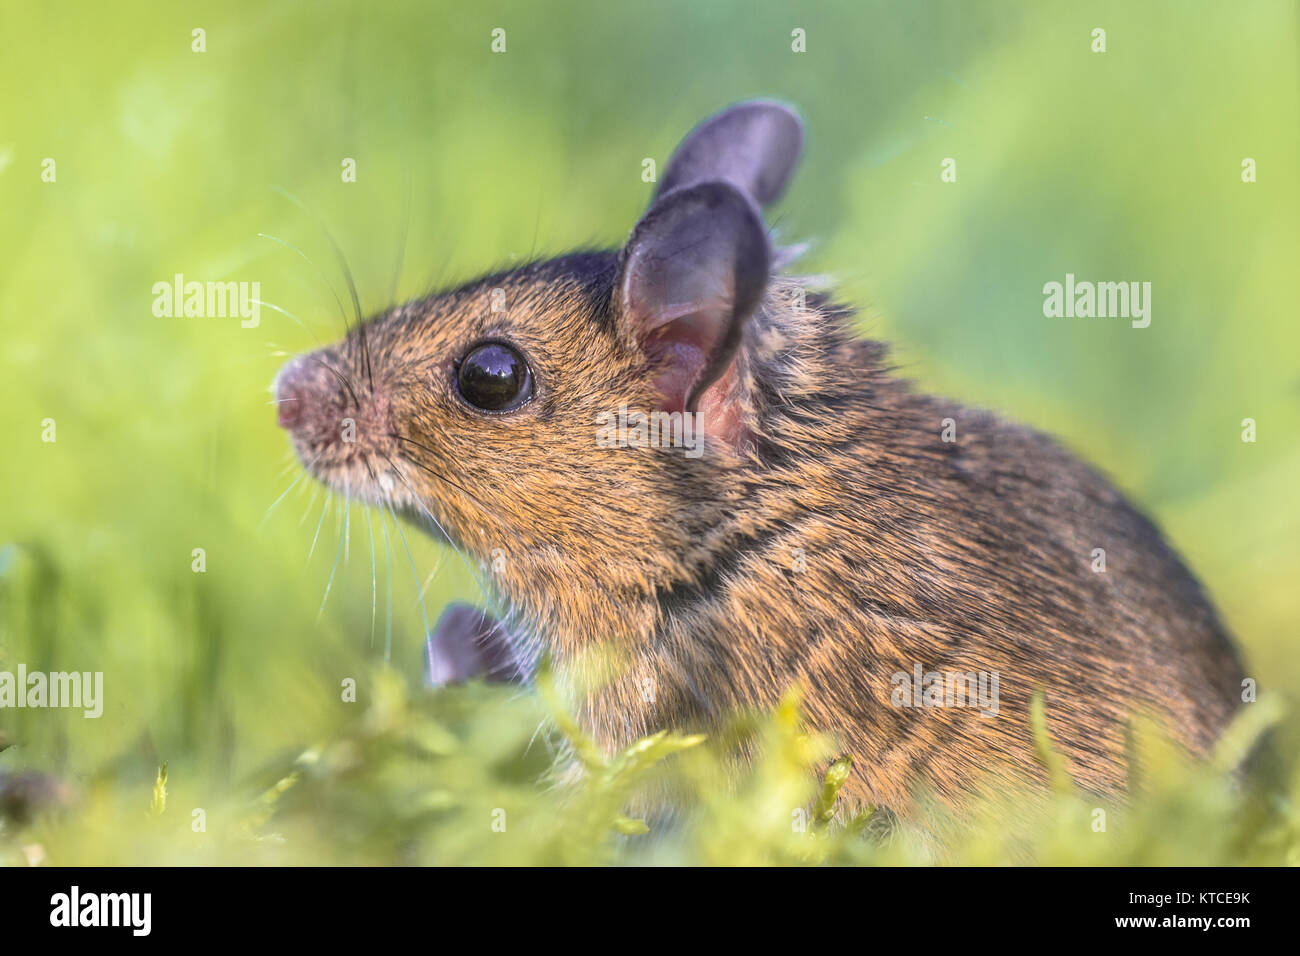 Head of Cute Wood mouse (Apodemus sylvaticus) reaching out of green moss natural environment - Stock Image